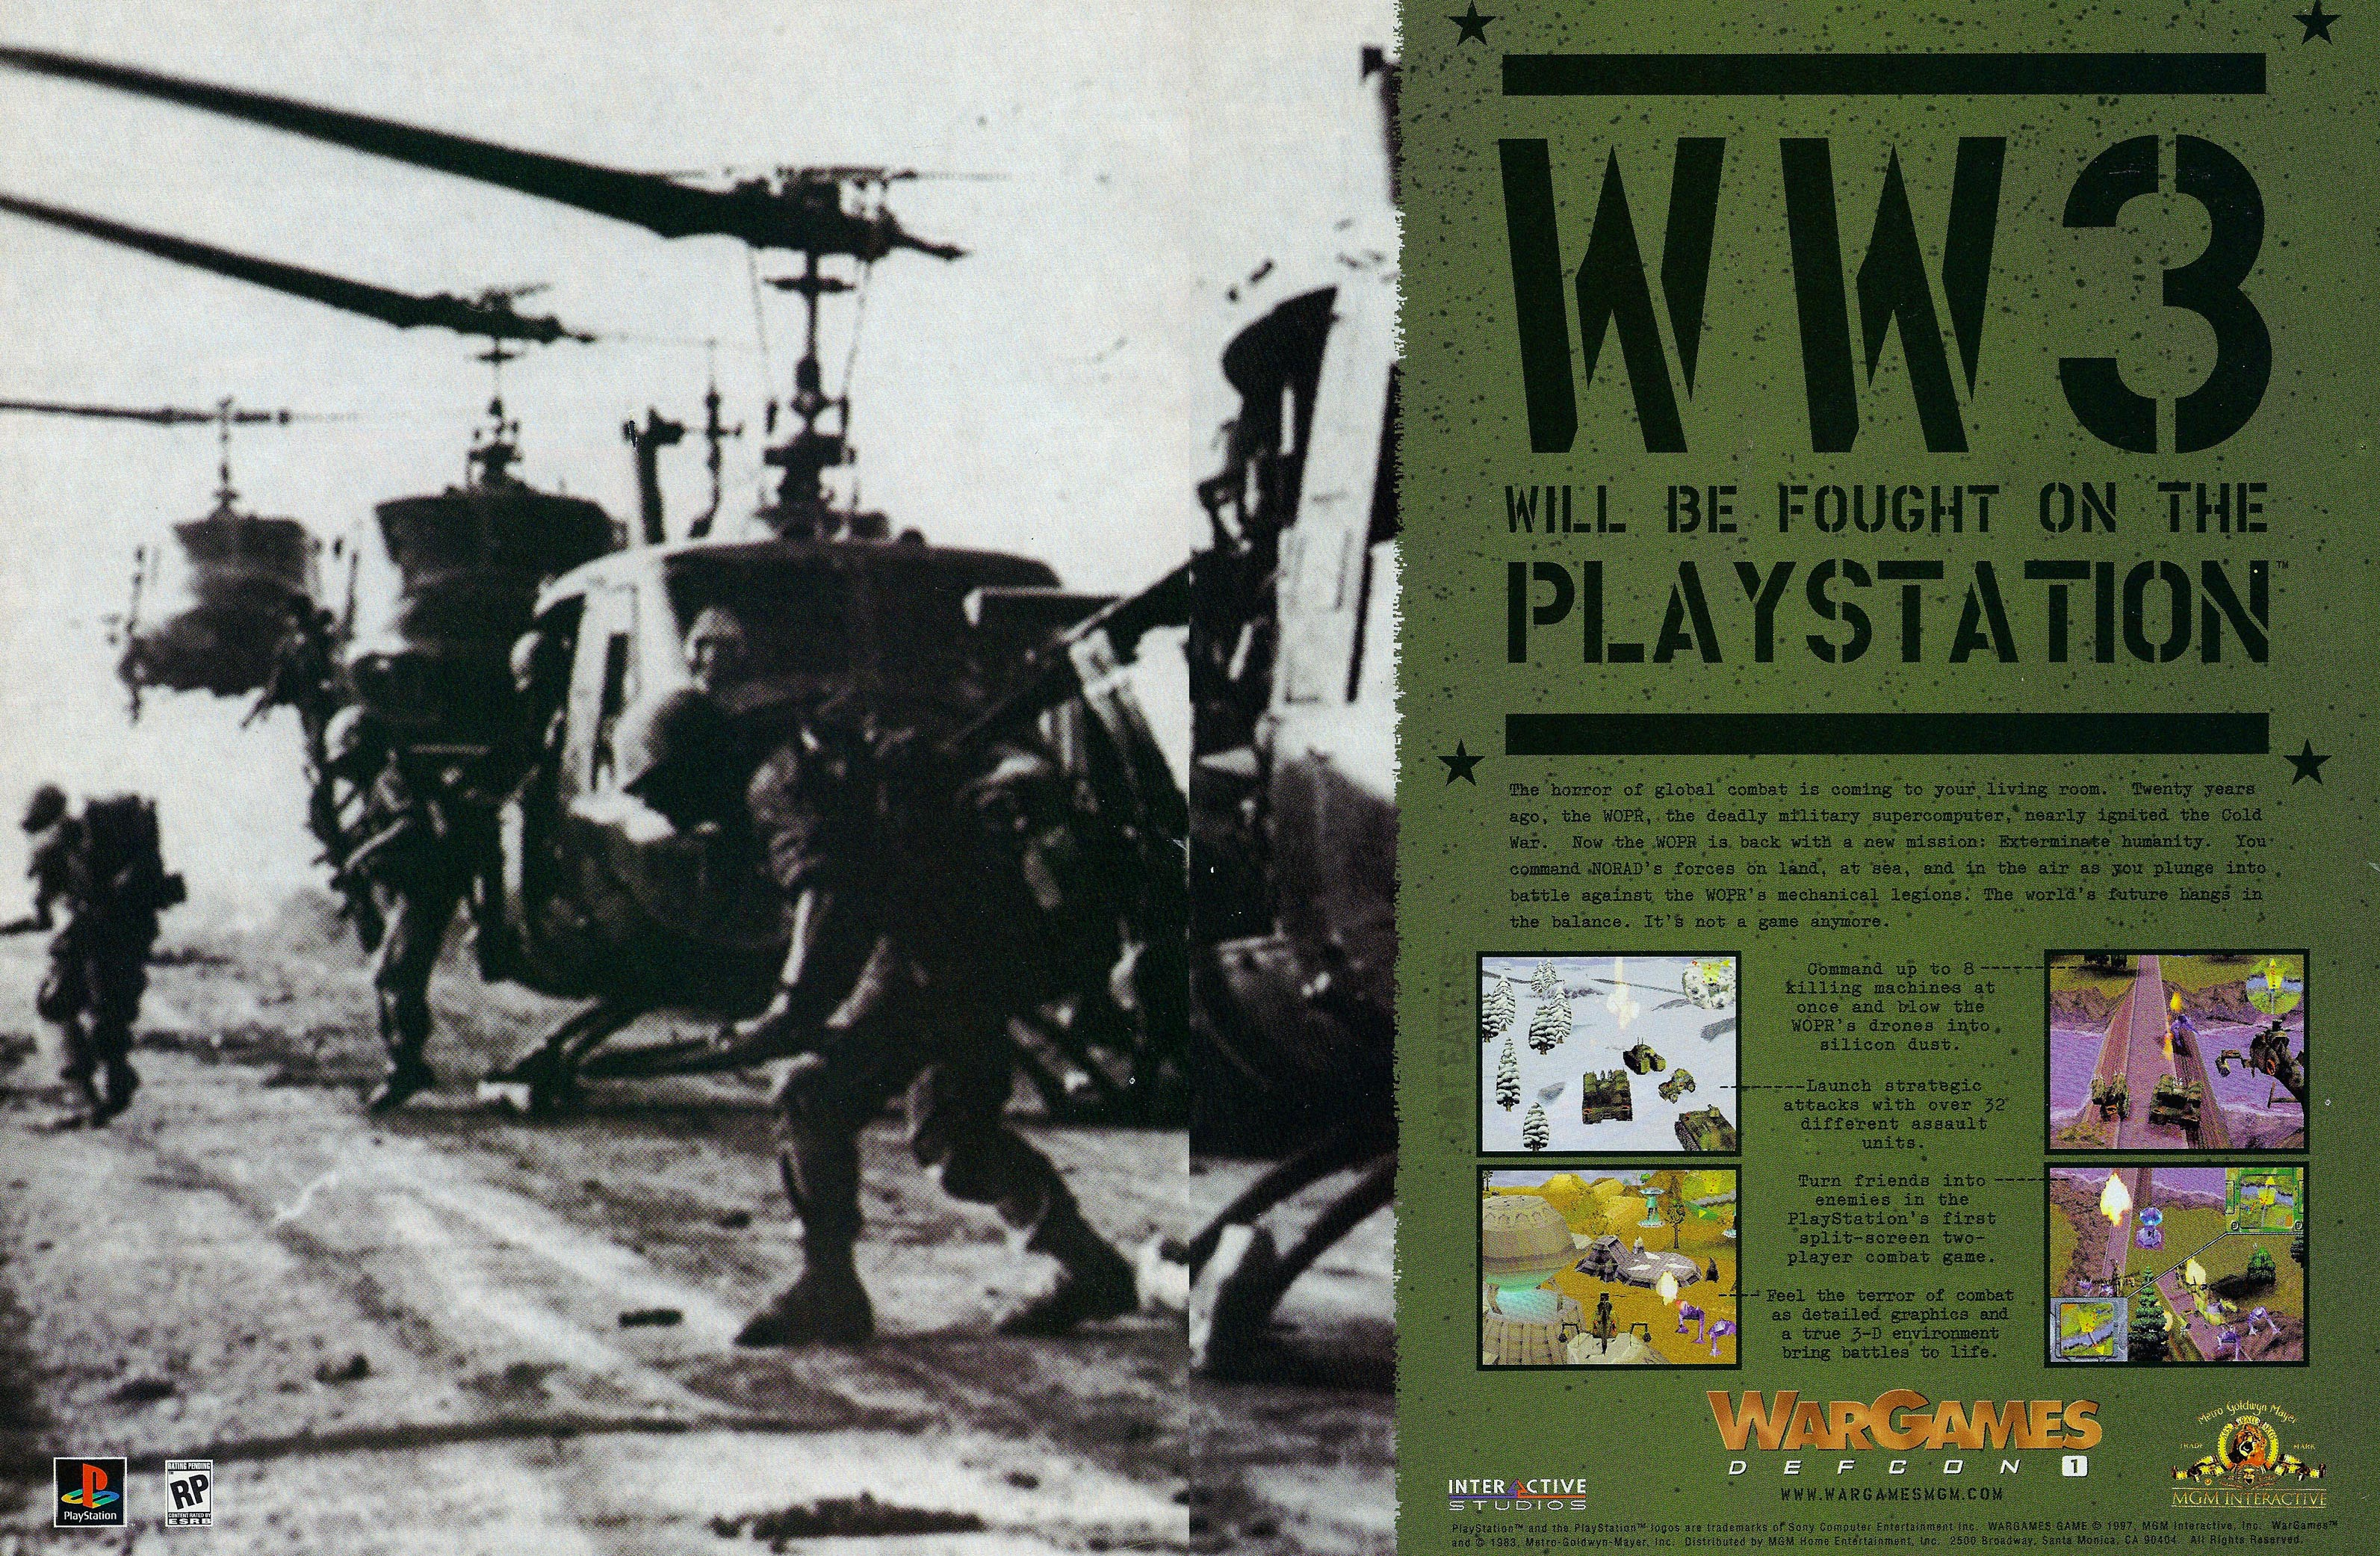 Ad for WarGames: Defcon 1, a Playstation video game by MGM Interactive